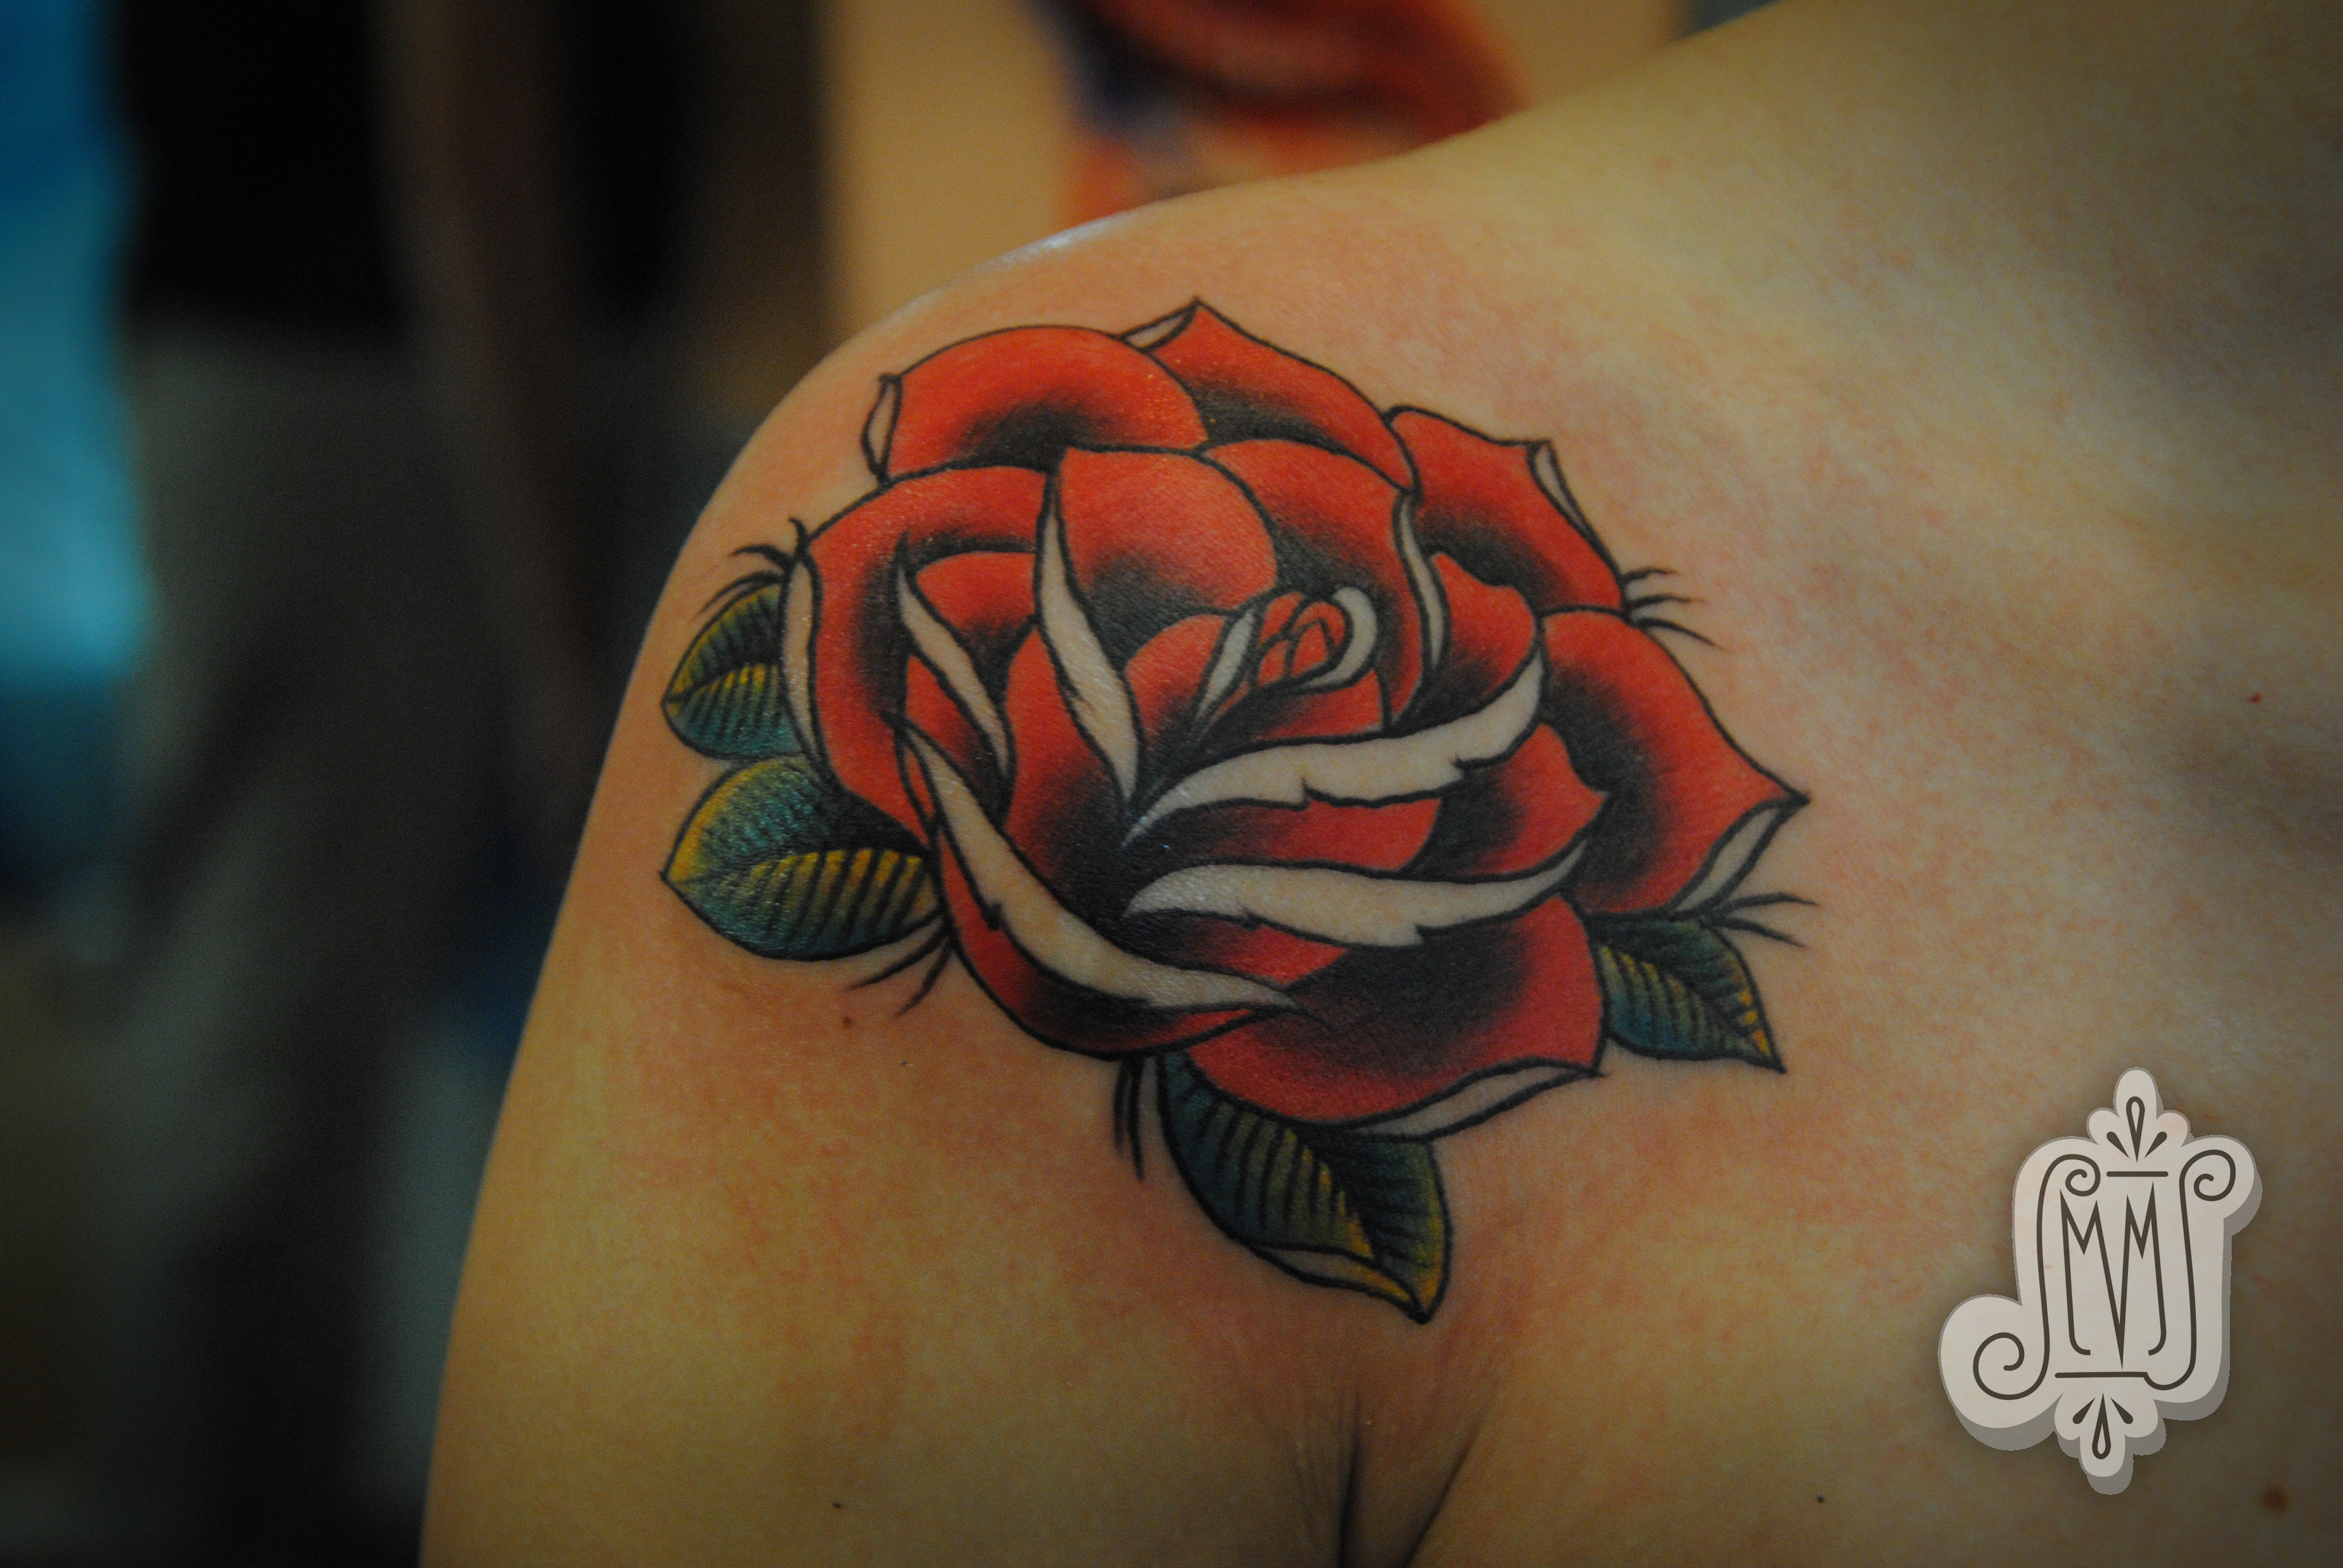 Tattoo Johnny - The Resource for Tattoo Designs and Tattoo